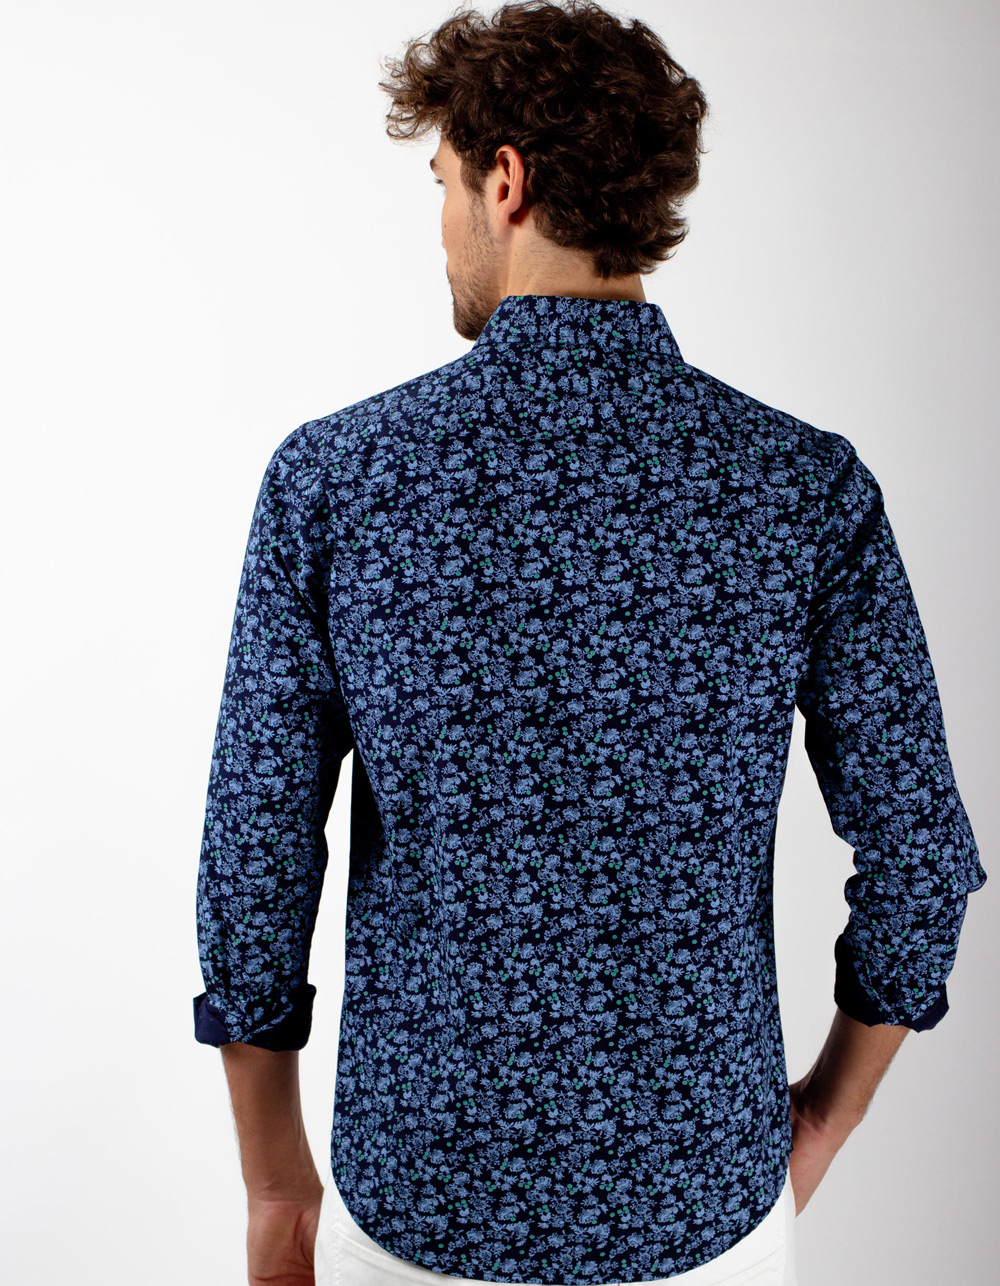 Camisa azul marino flores - Backside